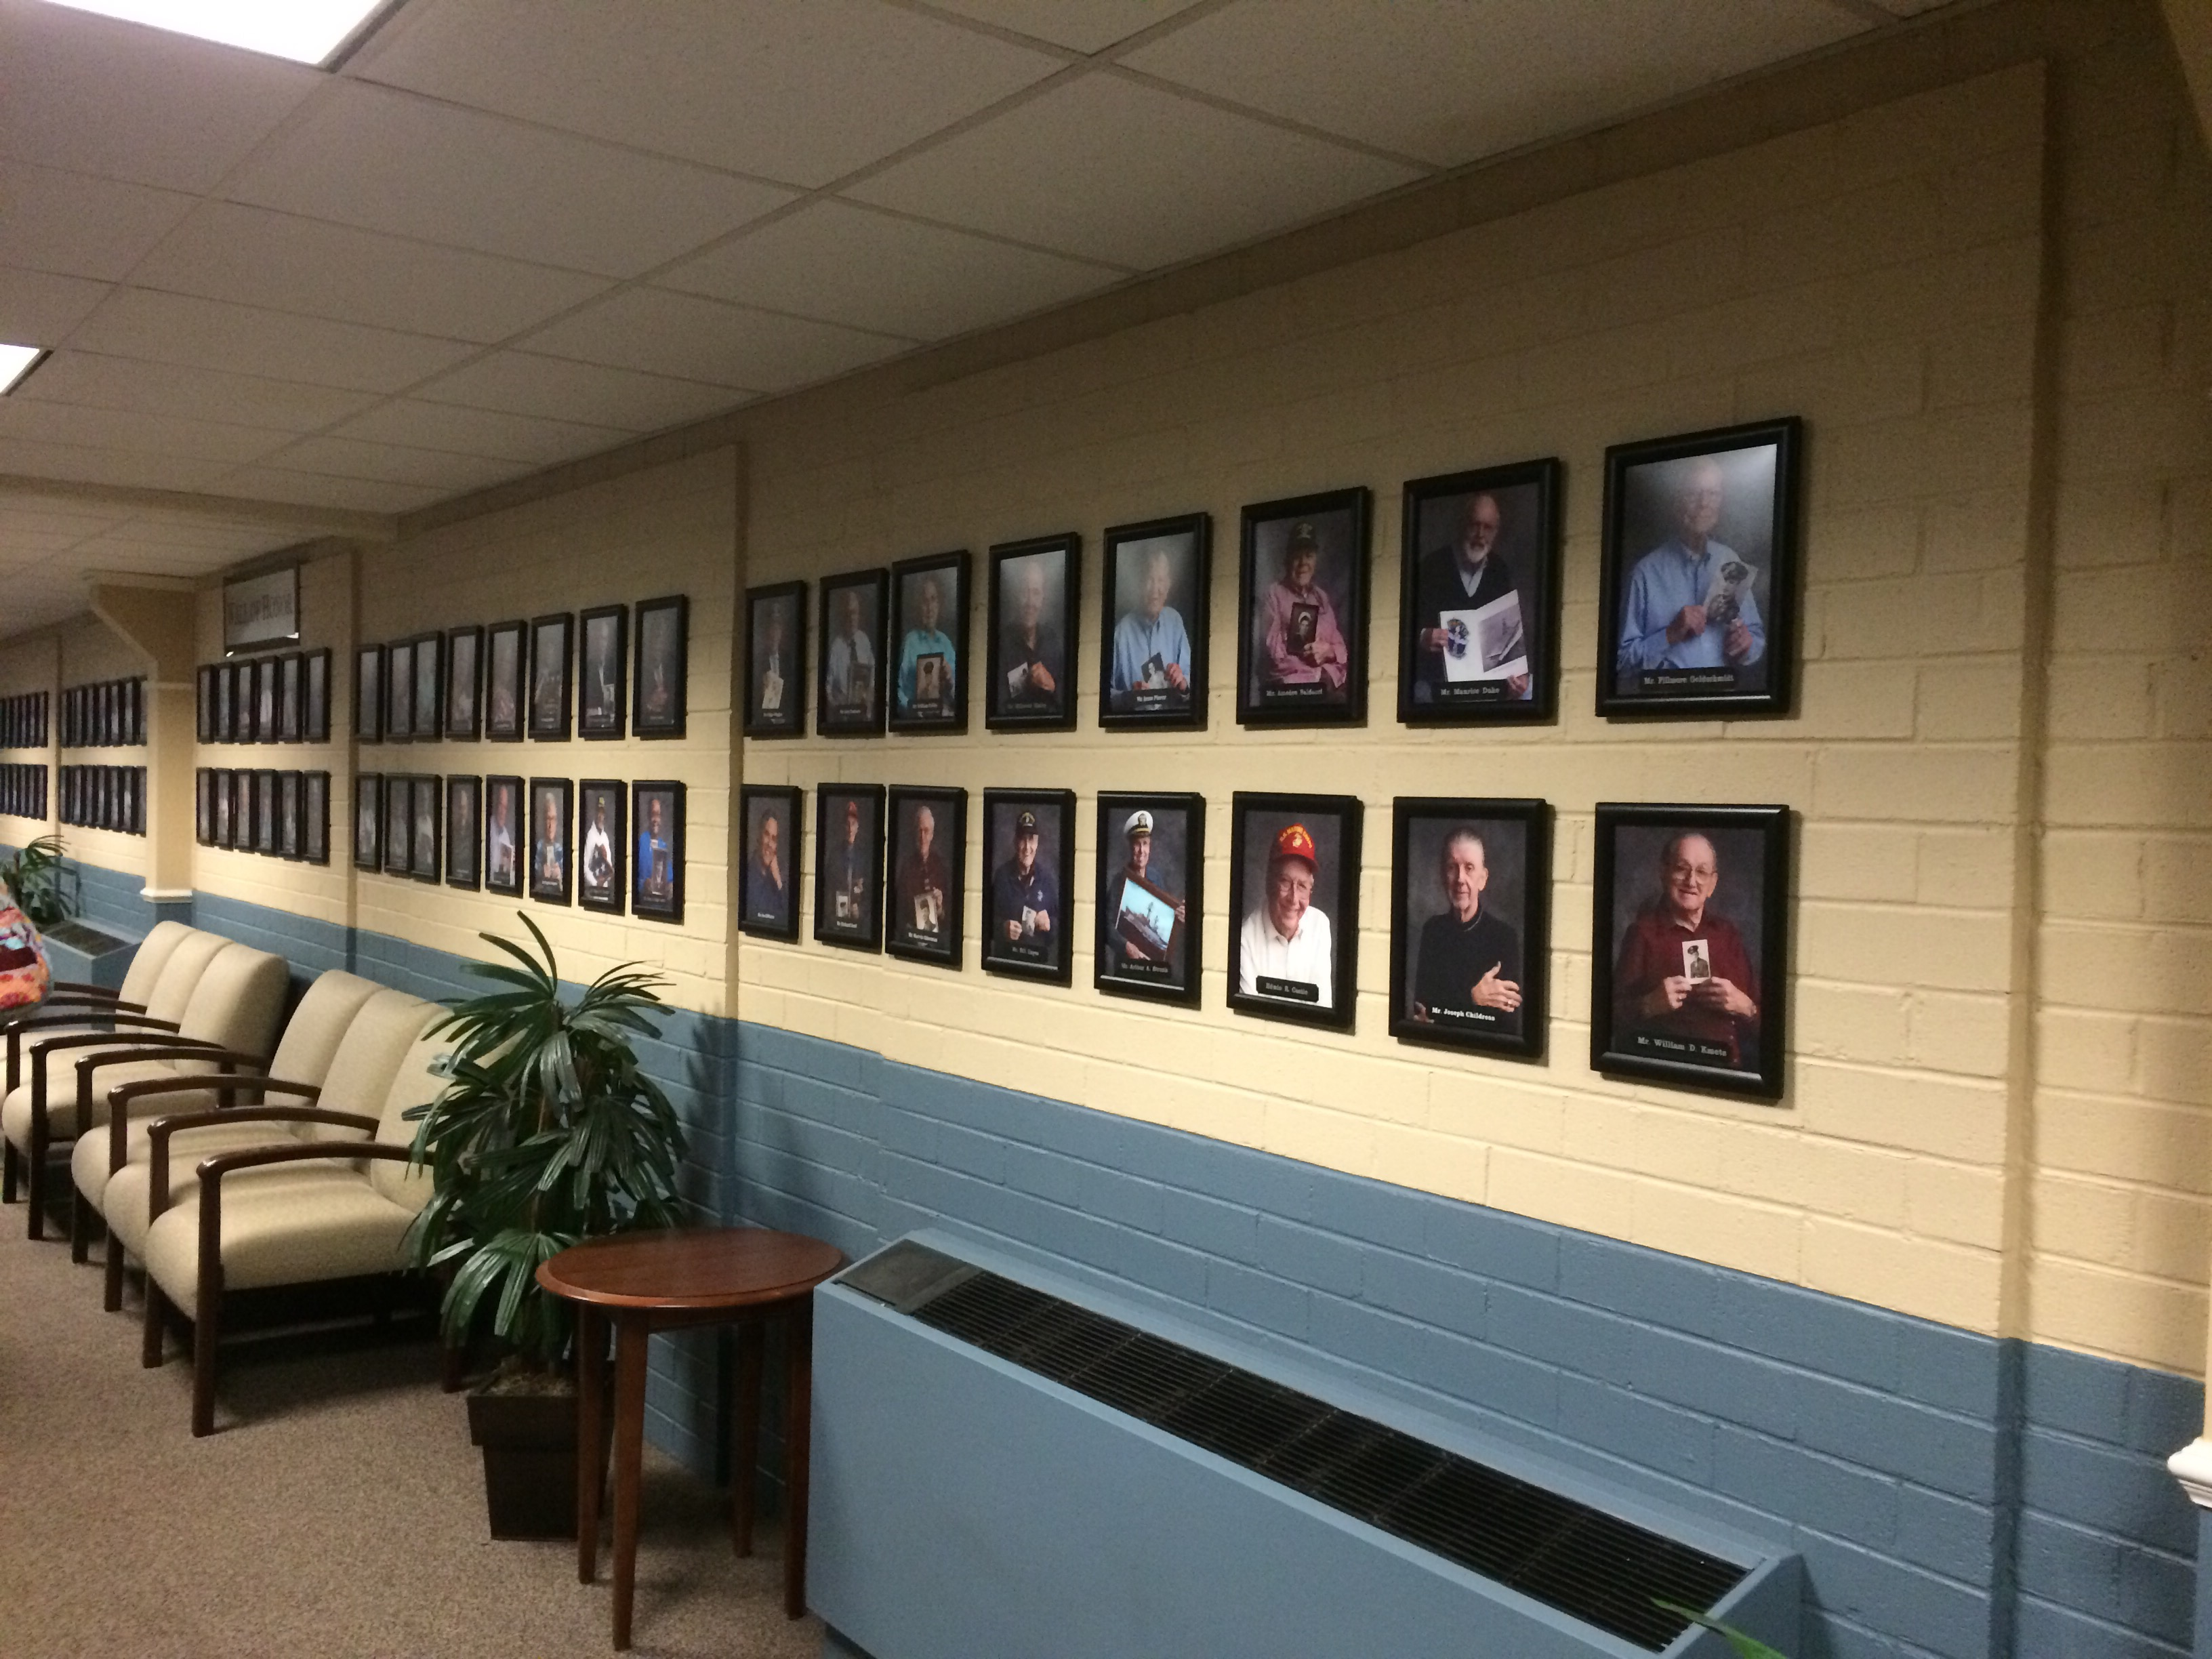 Wall of honor: a picture gallery of people who live here and have served in the military